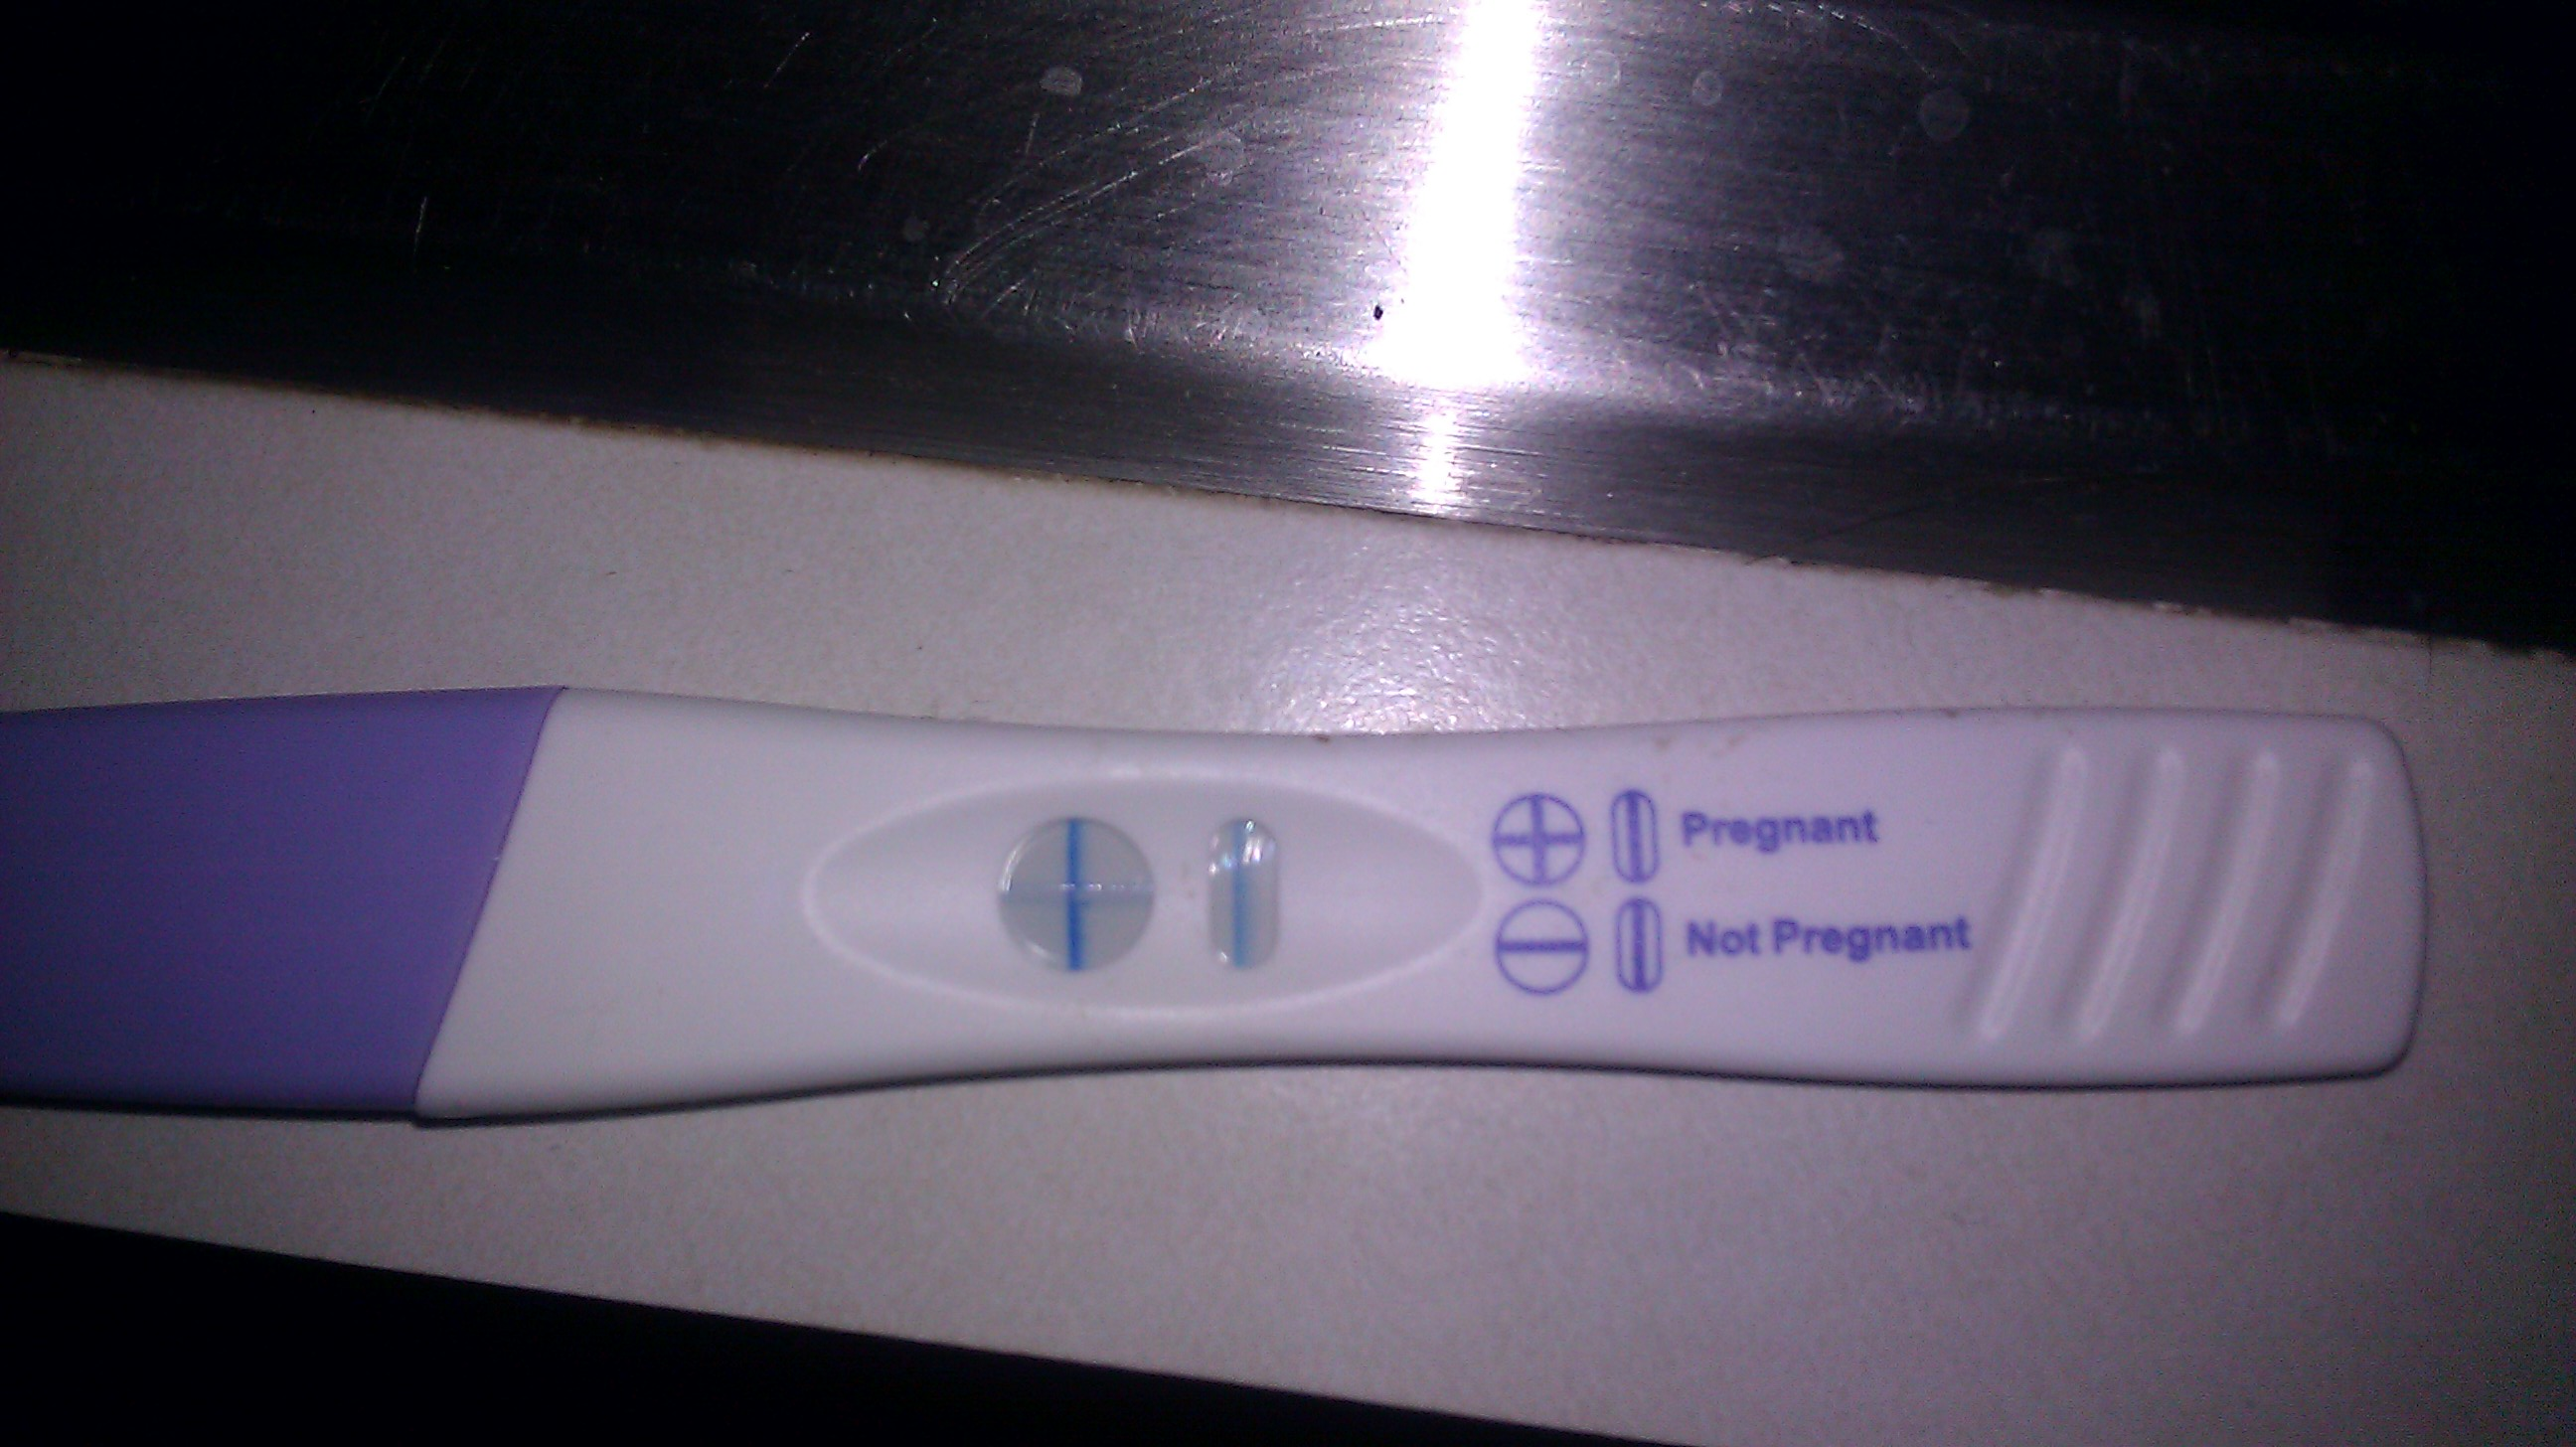 ept pregnancy test instructions